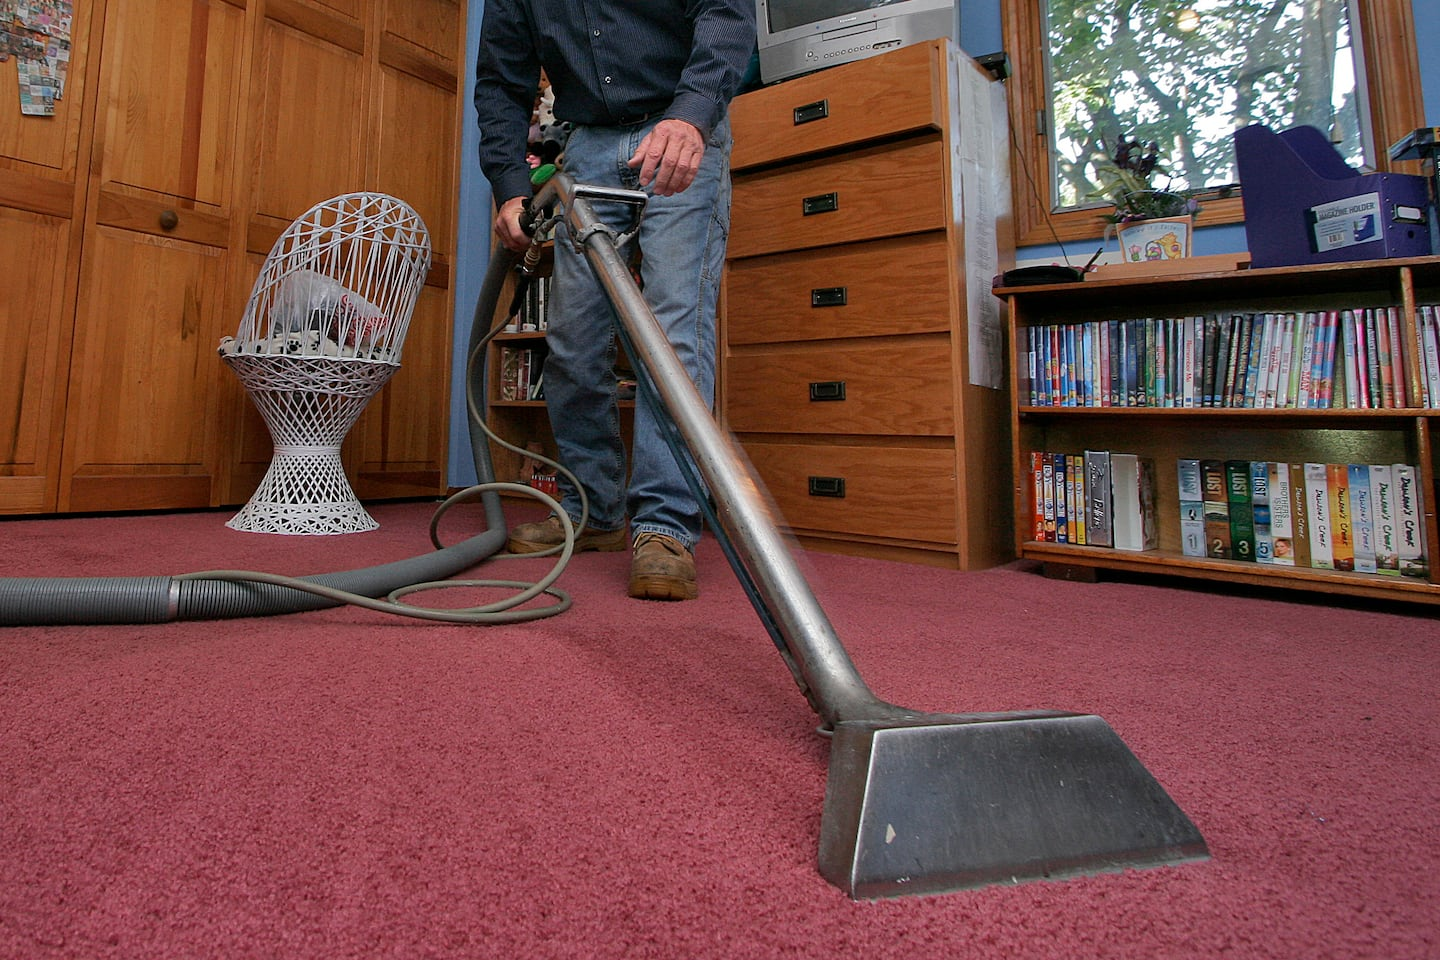 Dry Carpet Cleaning Vs Steam Cleaning Methods Angie S List